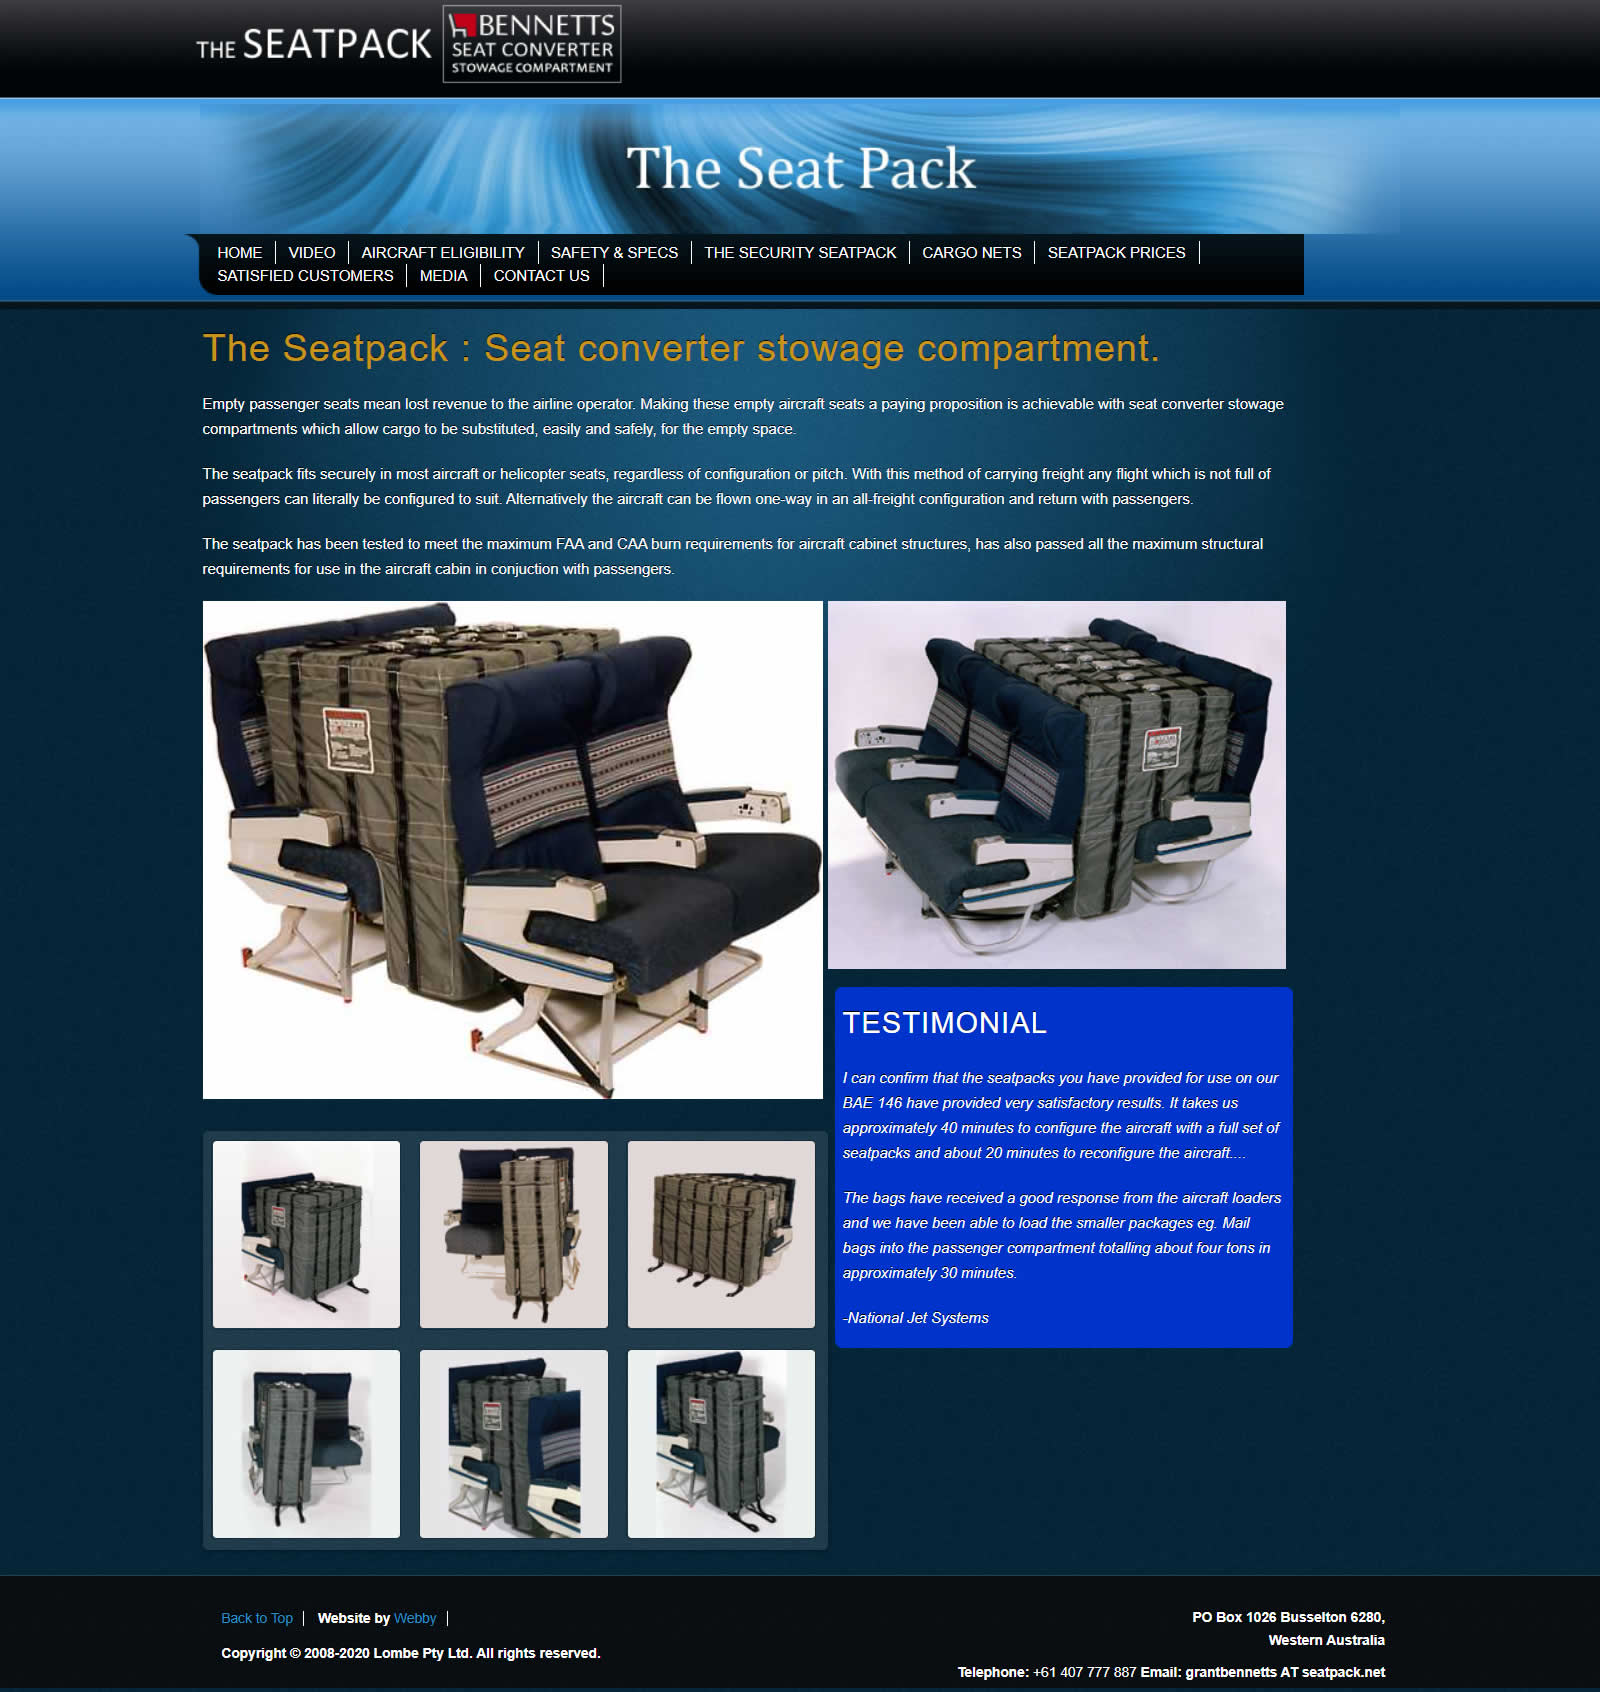 The Seat Pack